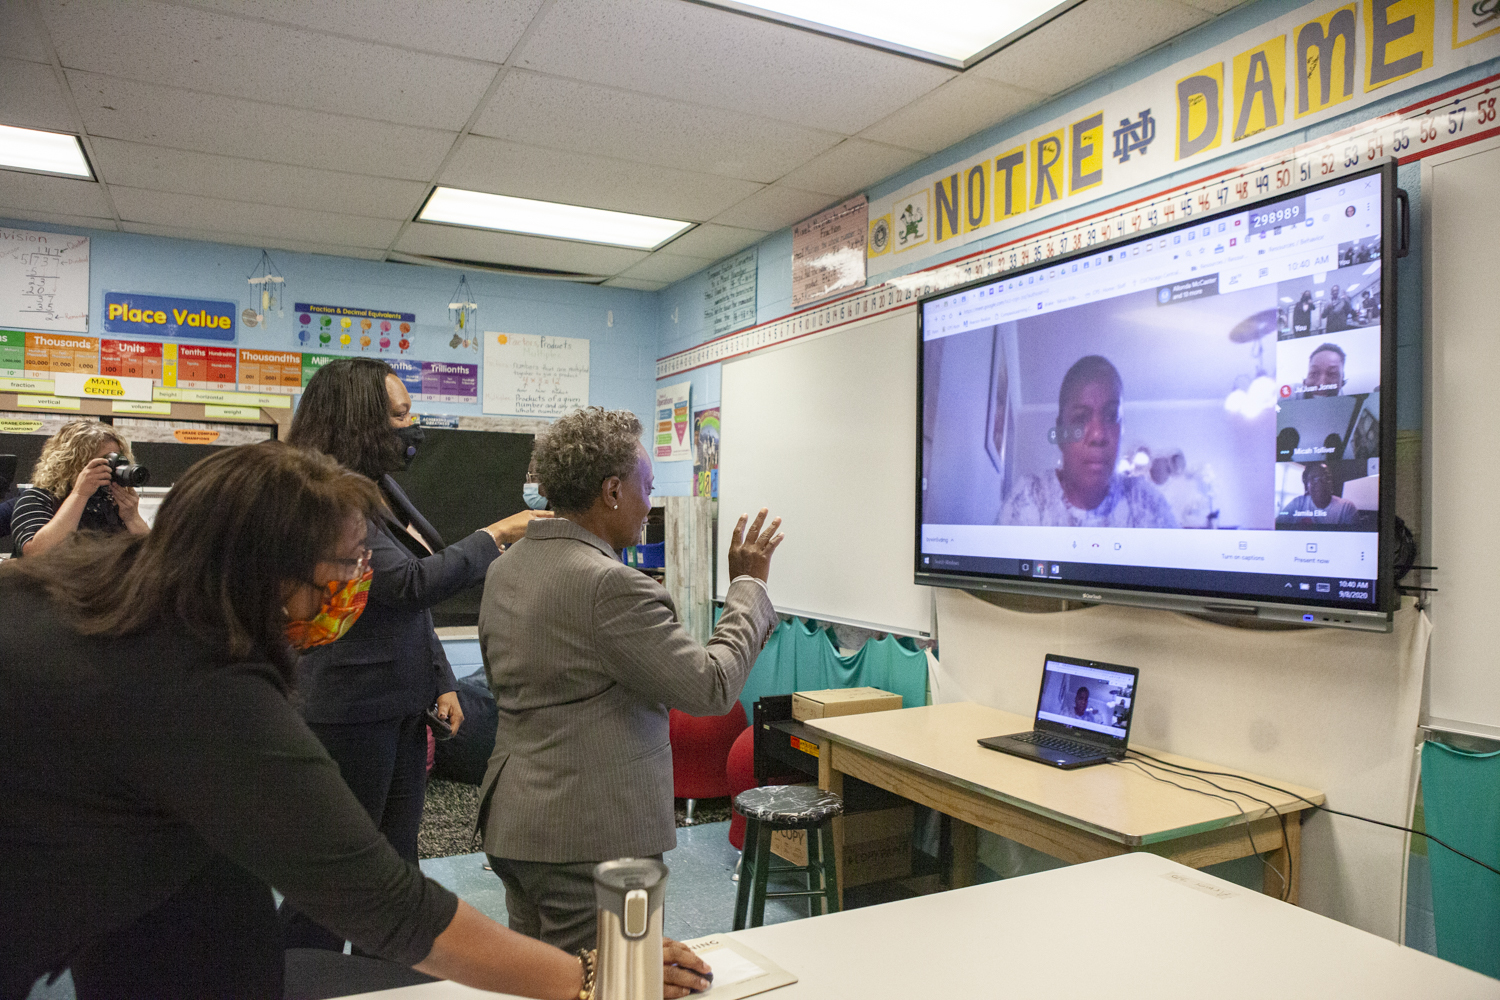 Mayor Lori Lightfoot talking to students over video chat on a large screen.